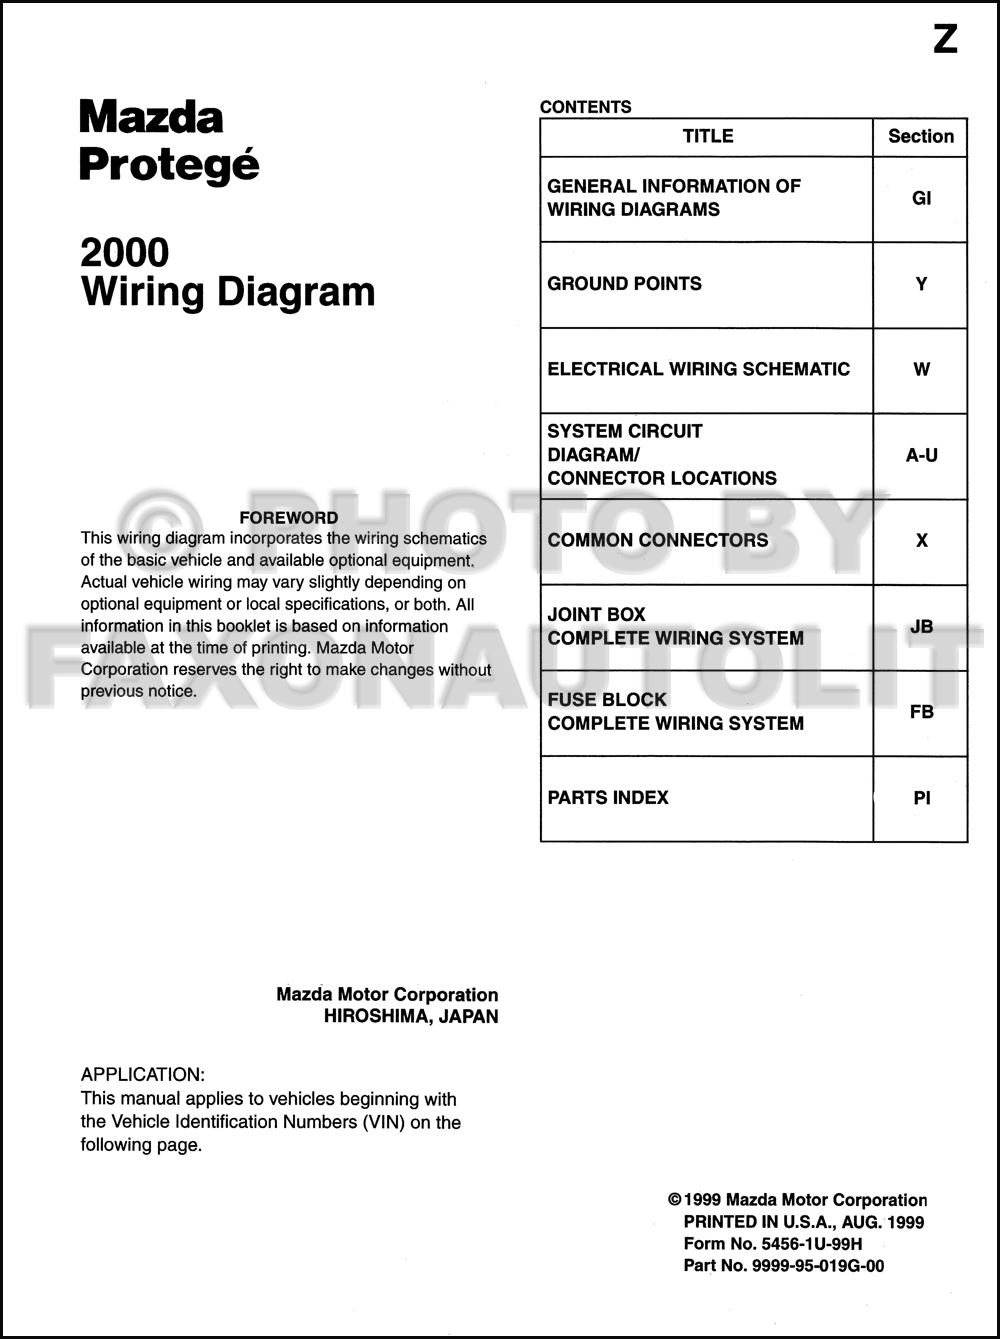 Stupendous Stereo Wiring Diagram 1999 Mazda Protege Wiring Library Wiring Cloud Eachirenstrafr09Org